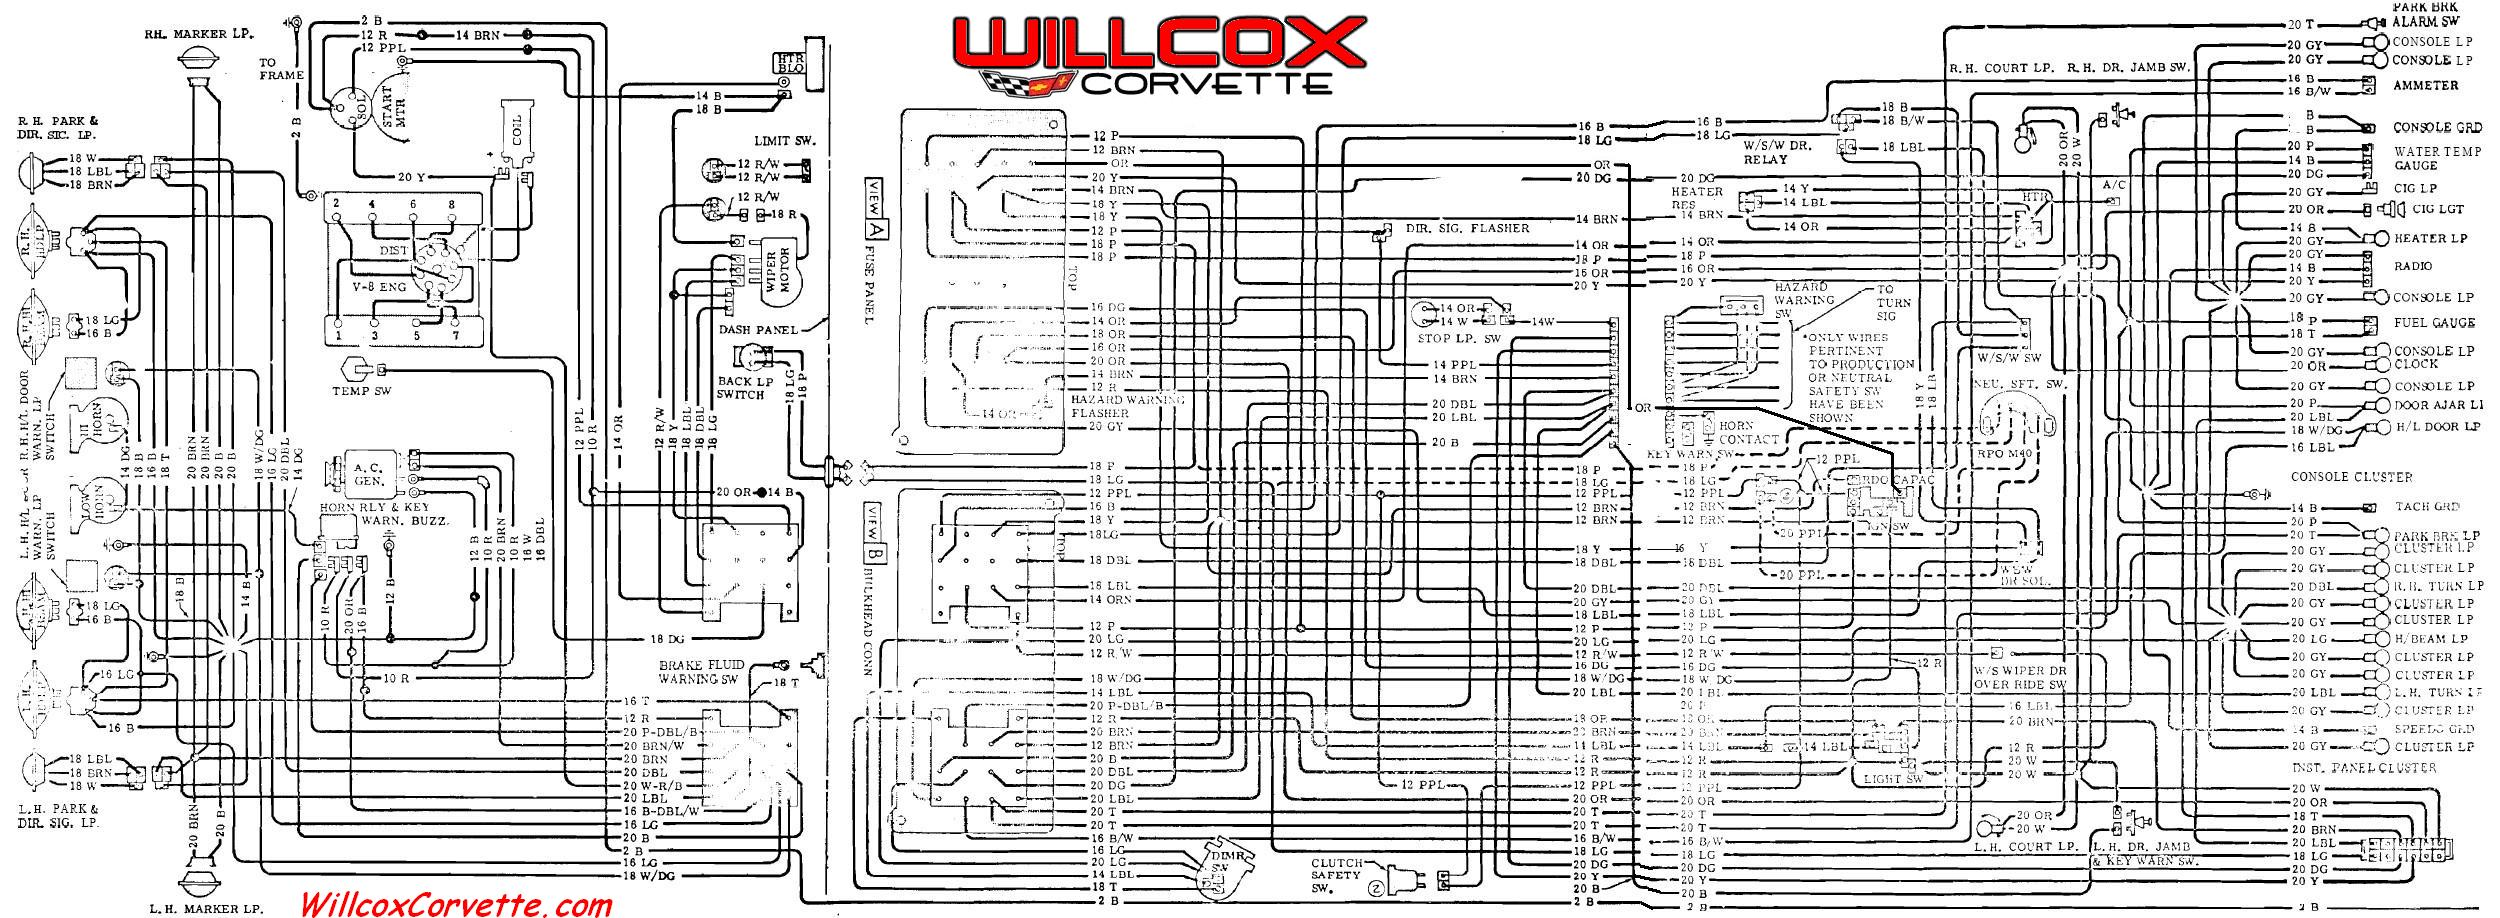 1969 Corvette Wiring Diagram Main And Engine Compartment